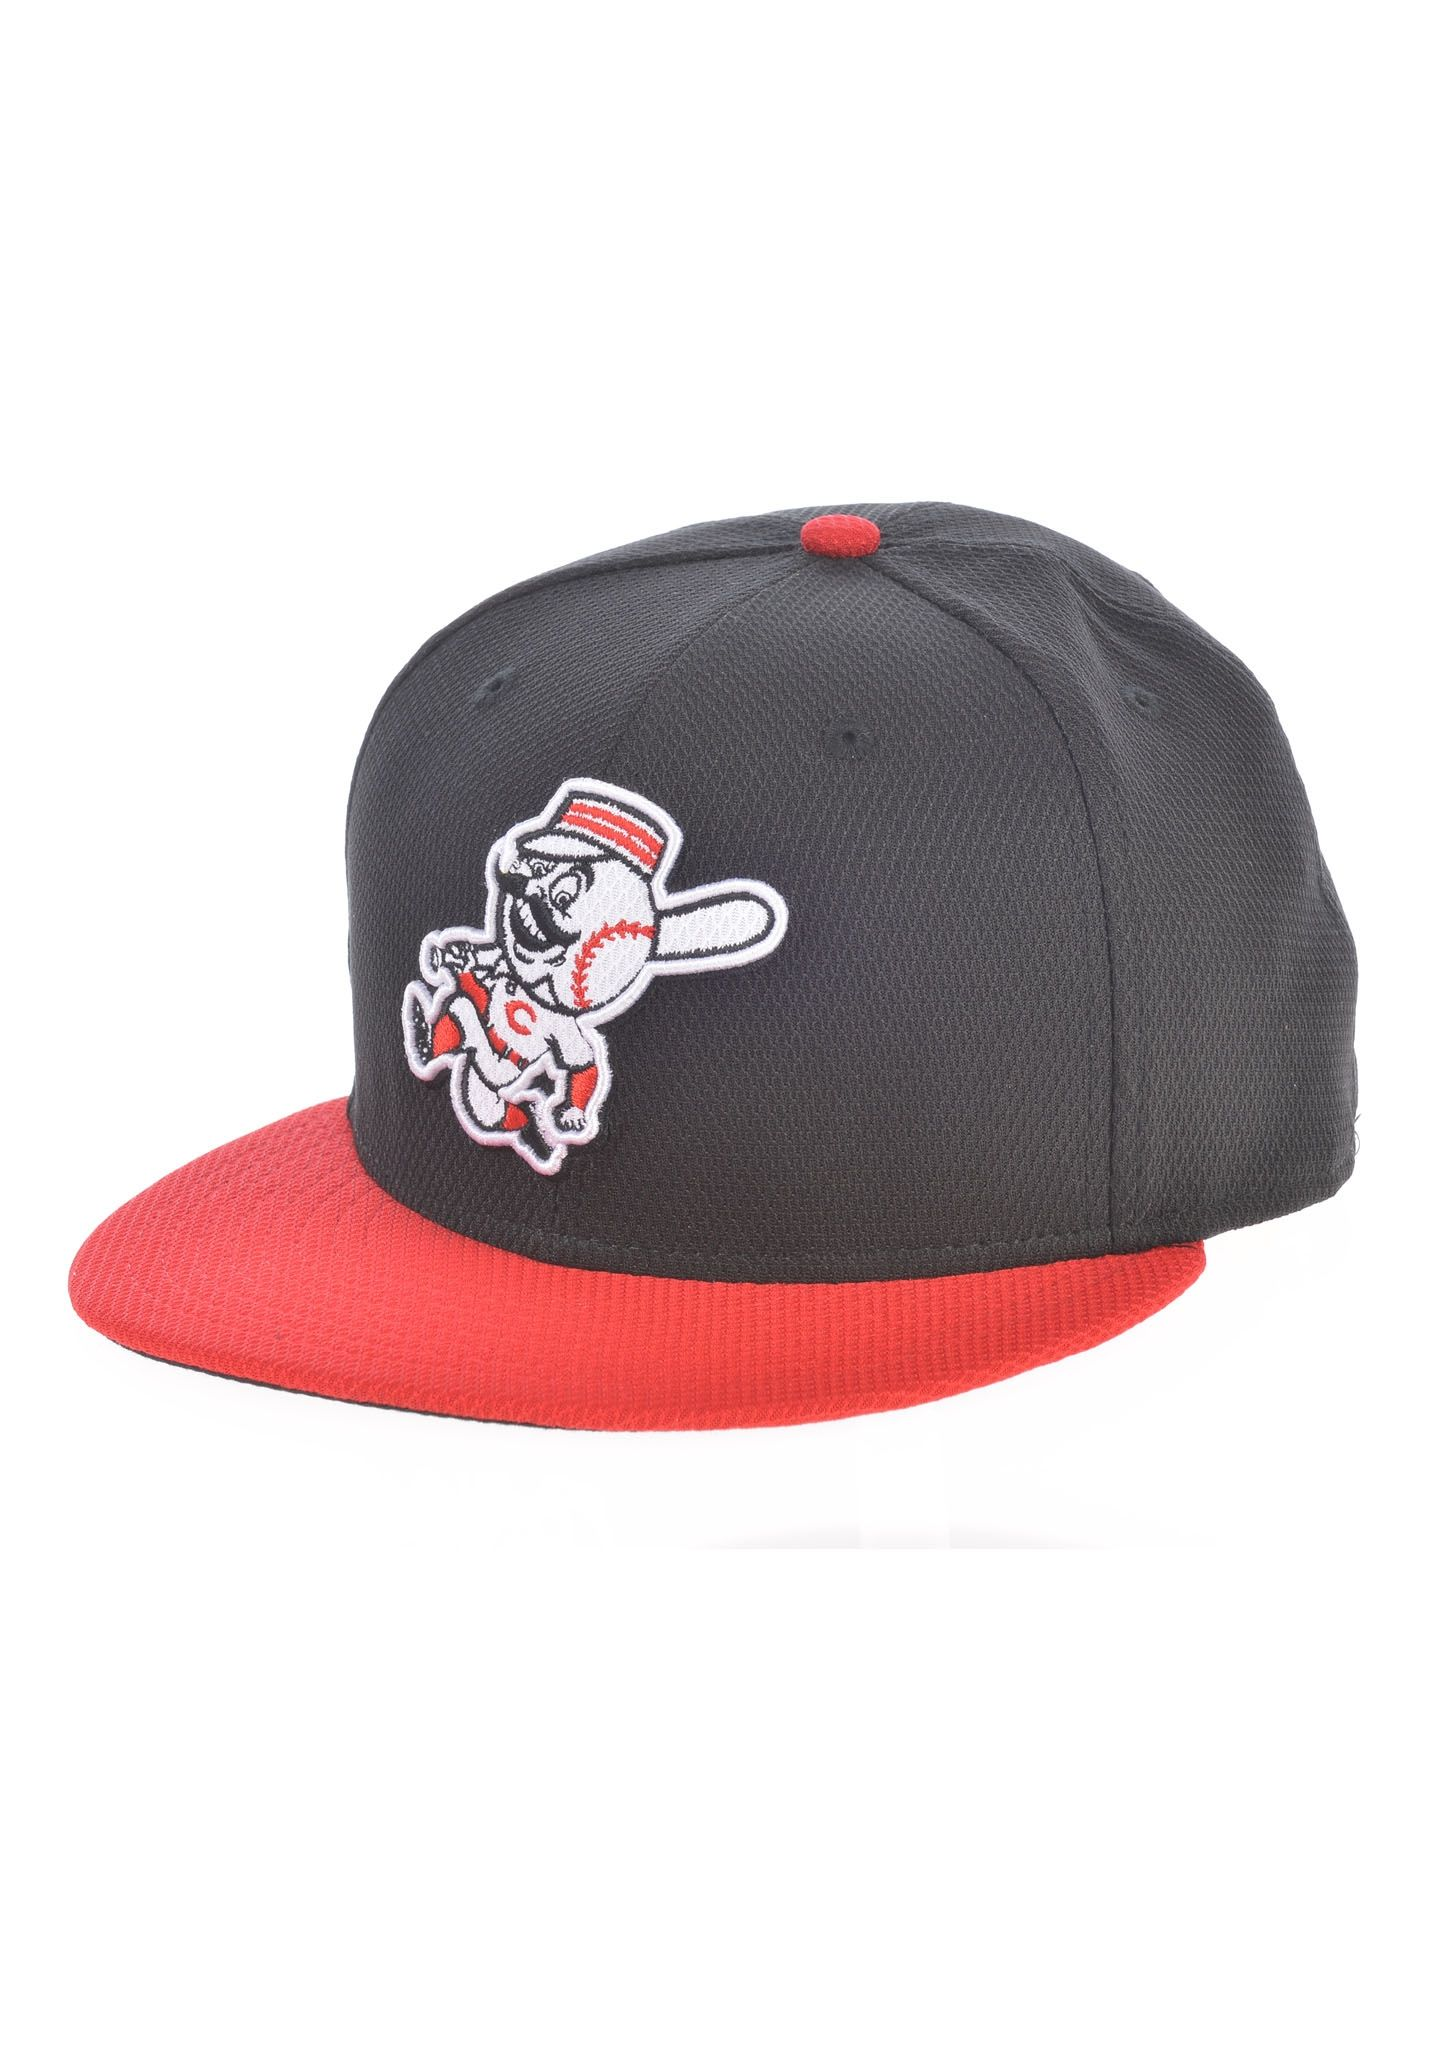 35d675d8 NEW Era Diamond Era Cincinnati Reds Fitted - Fitted Cap for Men - Black -  Planet Sports